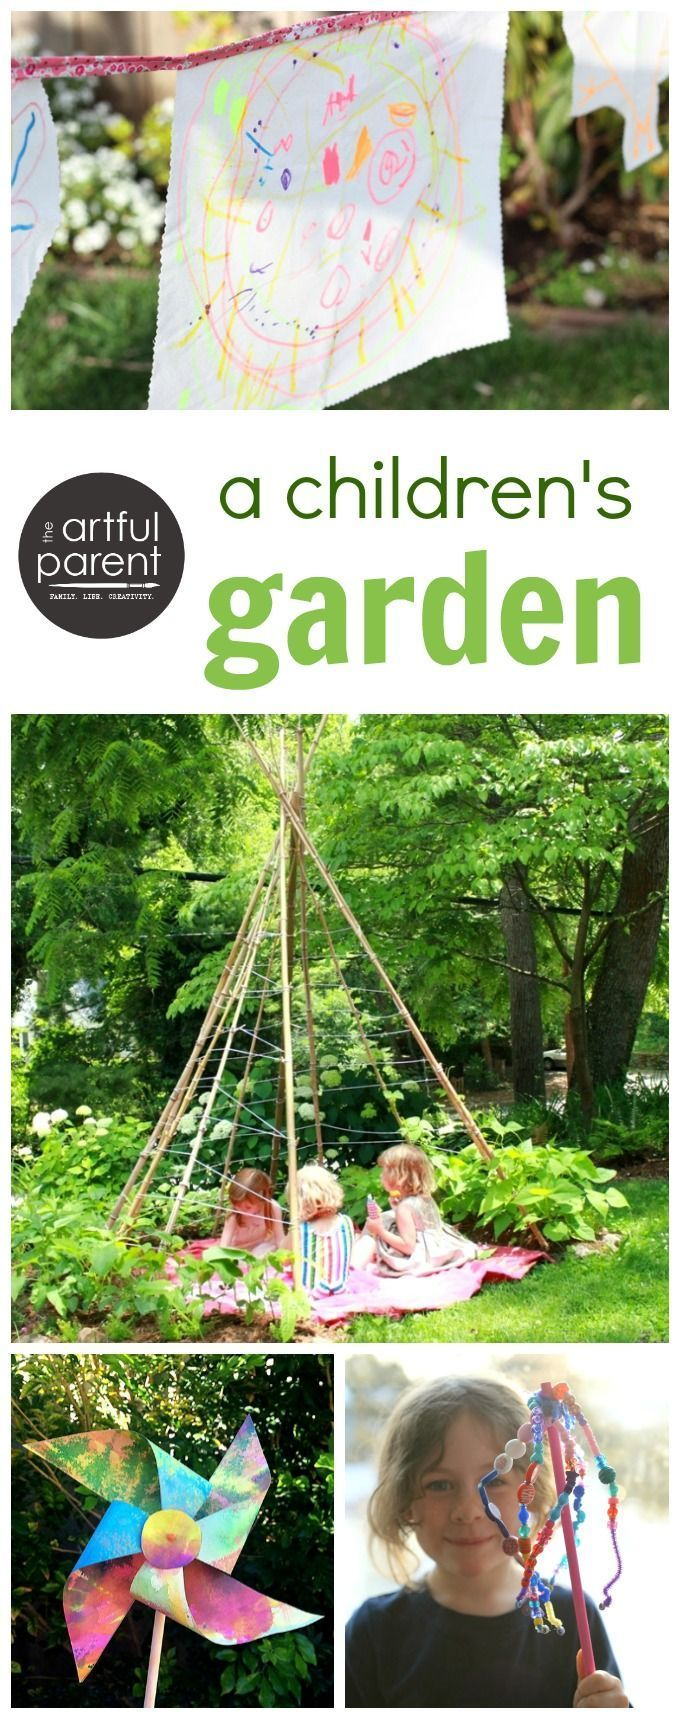 Garden Crafts for Kids - Plus Other Fun Nature Arts and Crafts Ideas ...